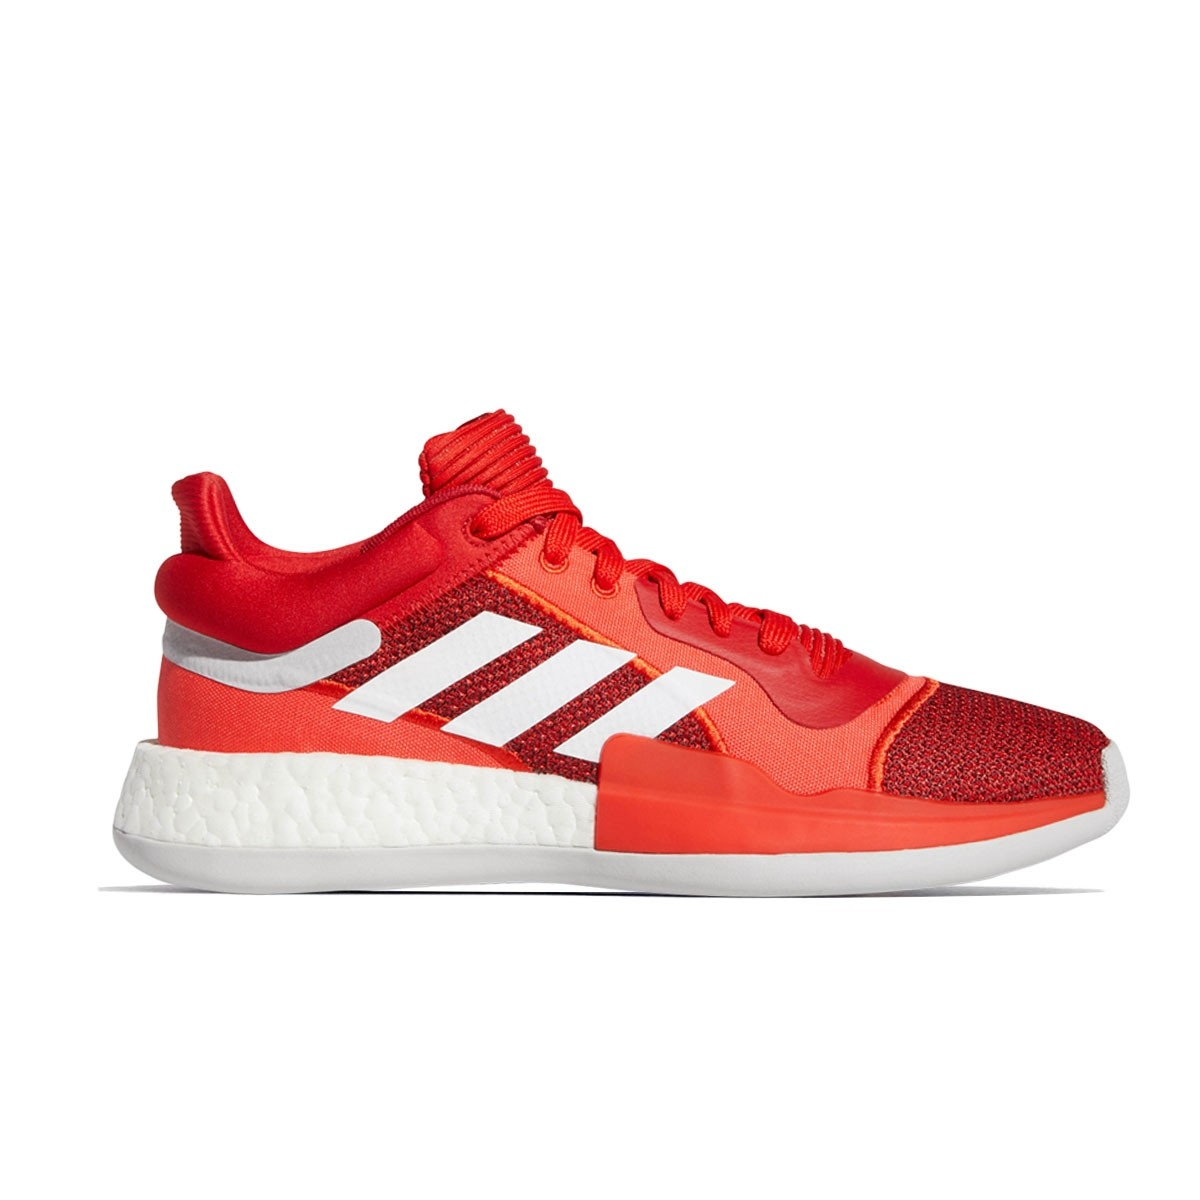 ADIDAS Marquee Boost Low 'Red Scarlet'